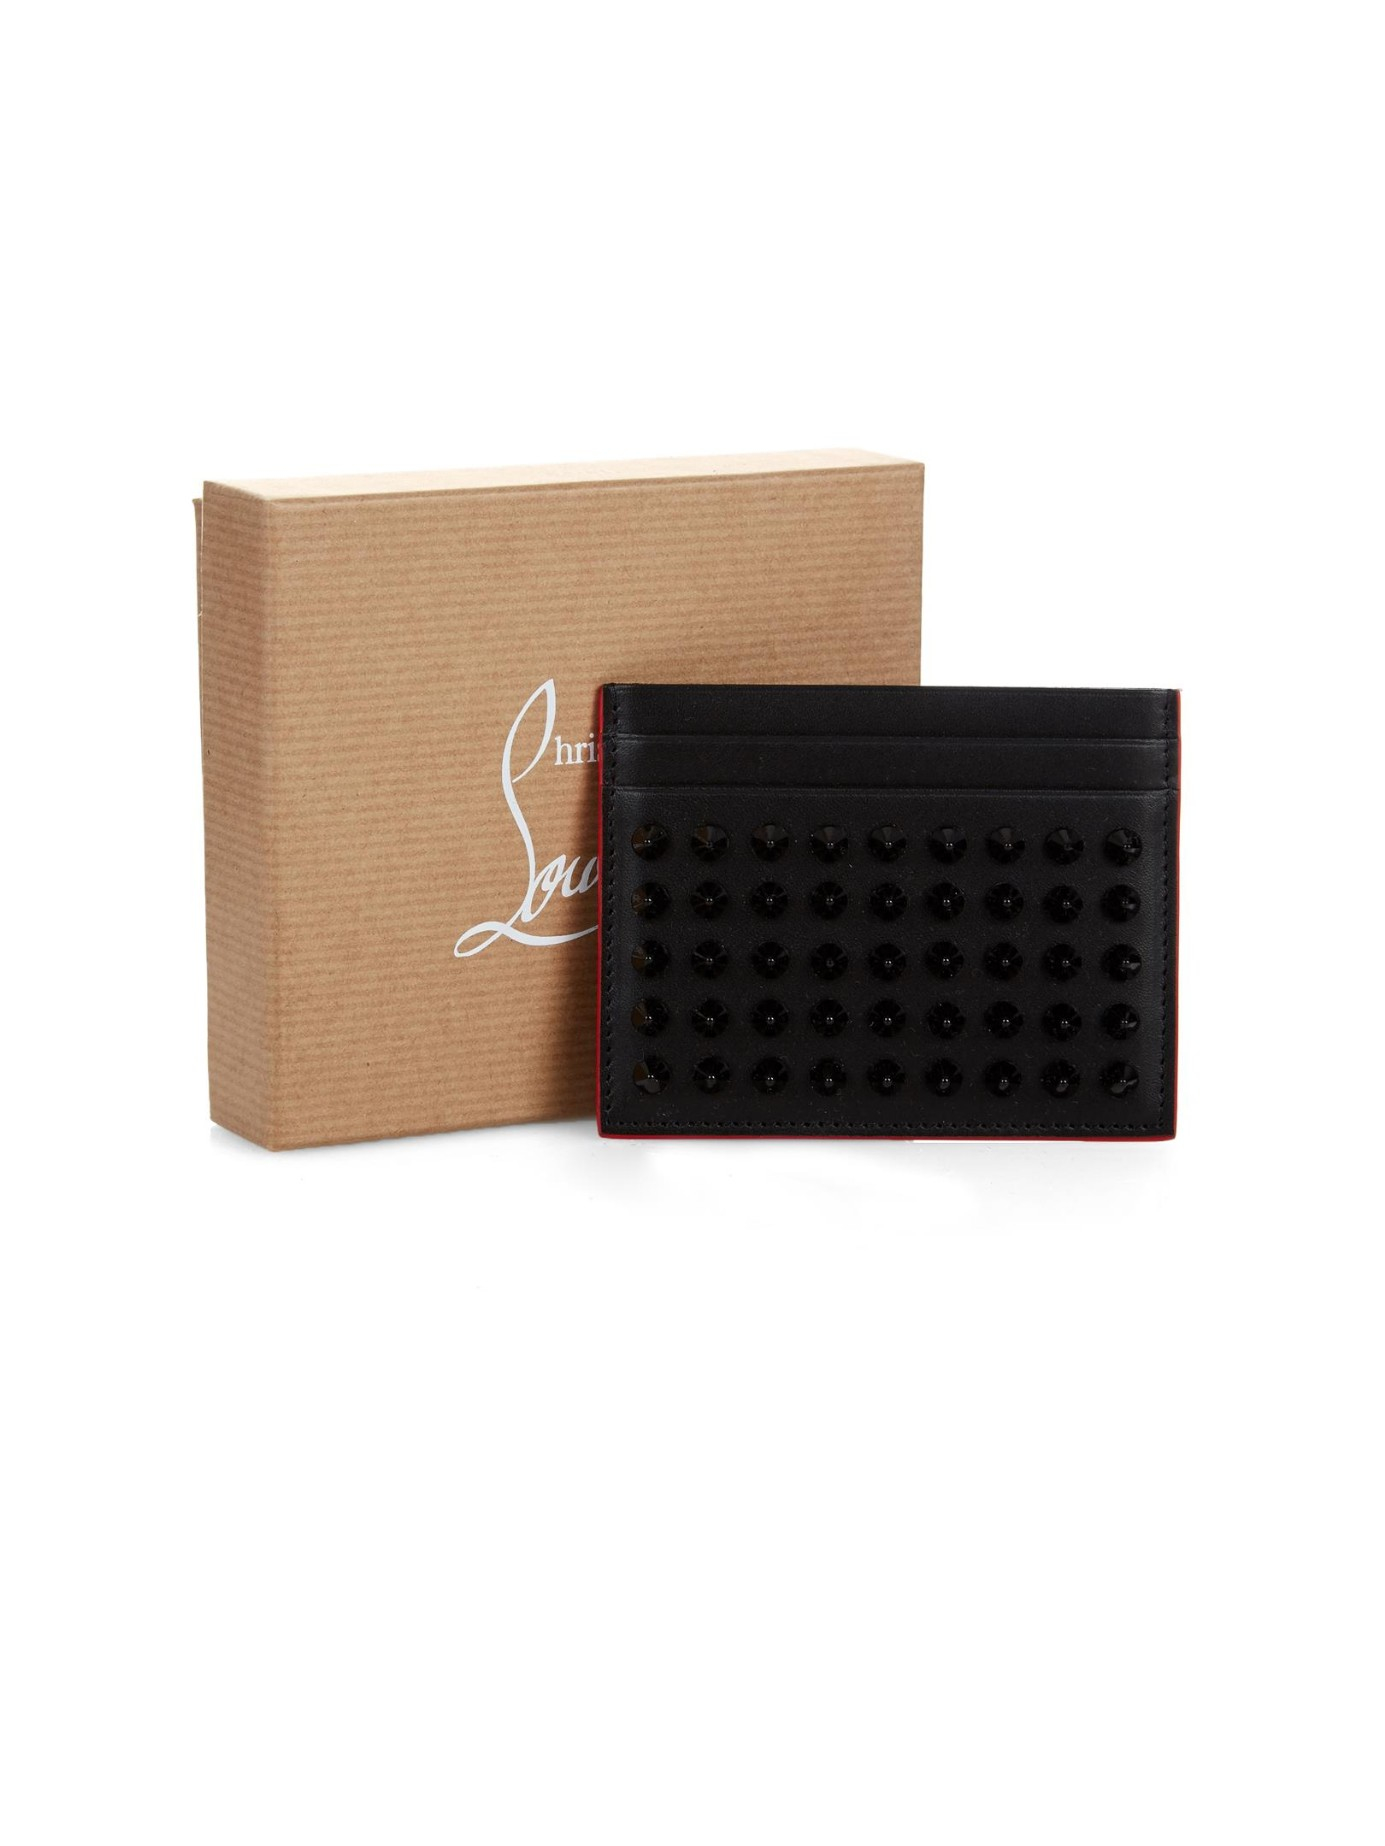 68362639bdf Christian Louboutin Black Kios Spikes Leather Cardholder for men